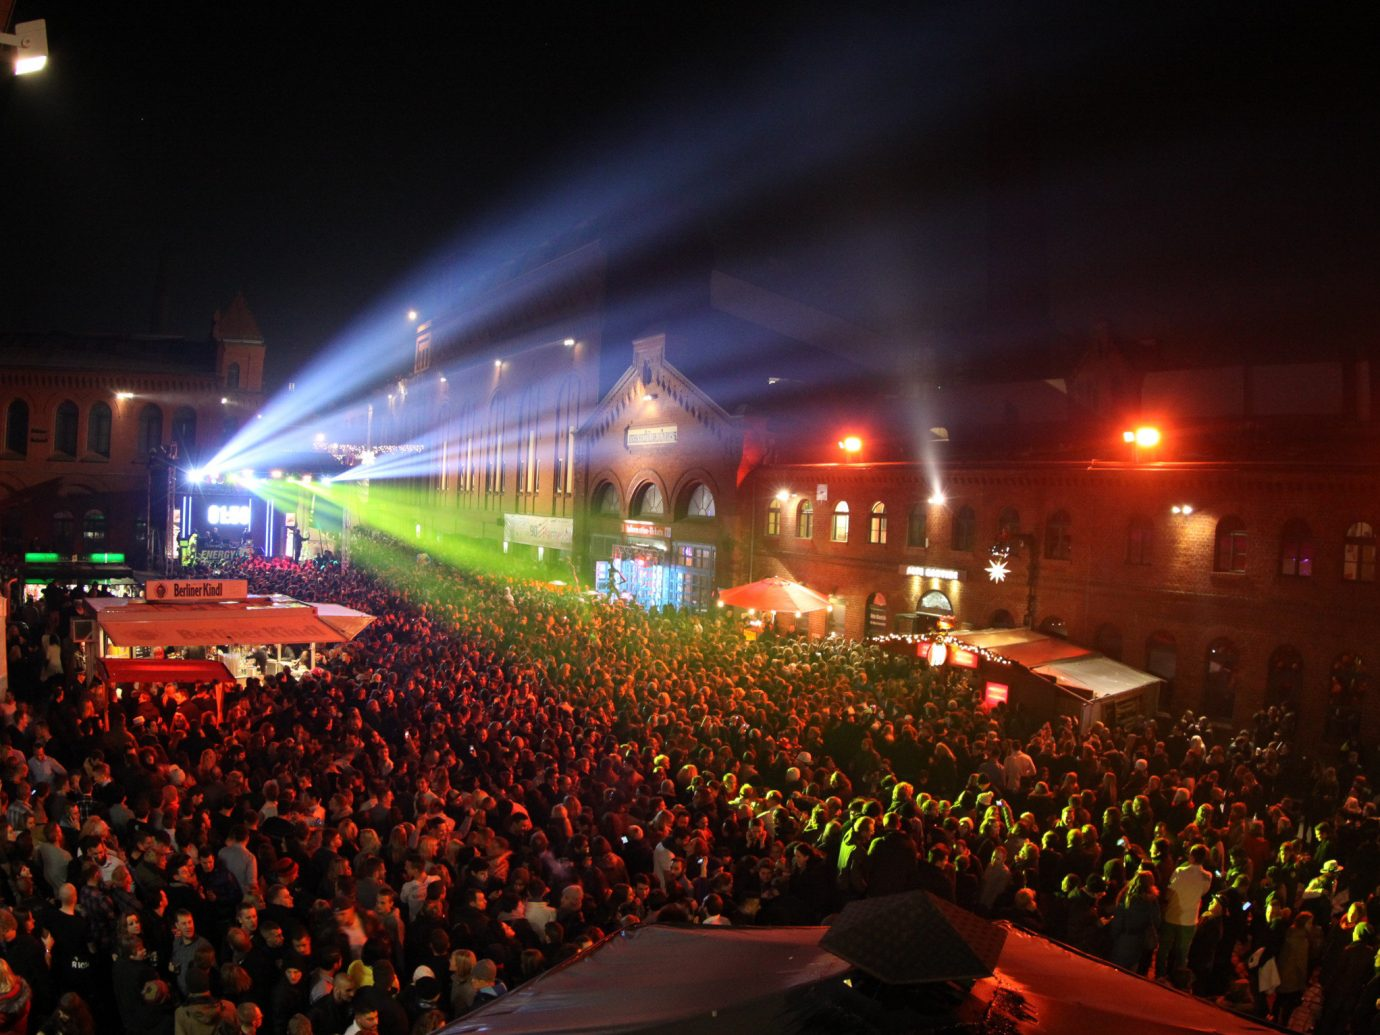 Trip Ideas crowd outdoor performance people audience night stage concert performing arts festival stadium